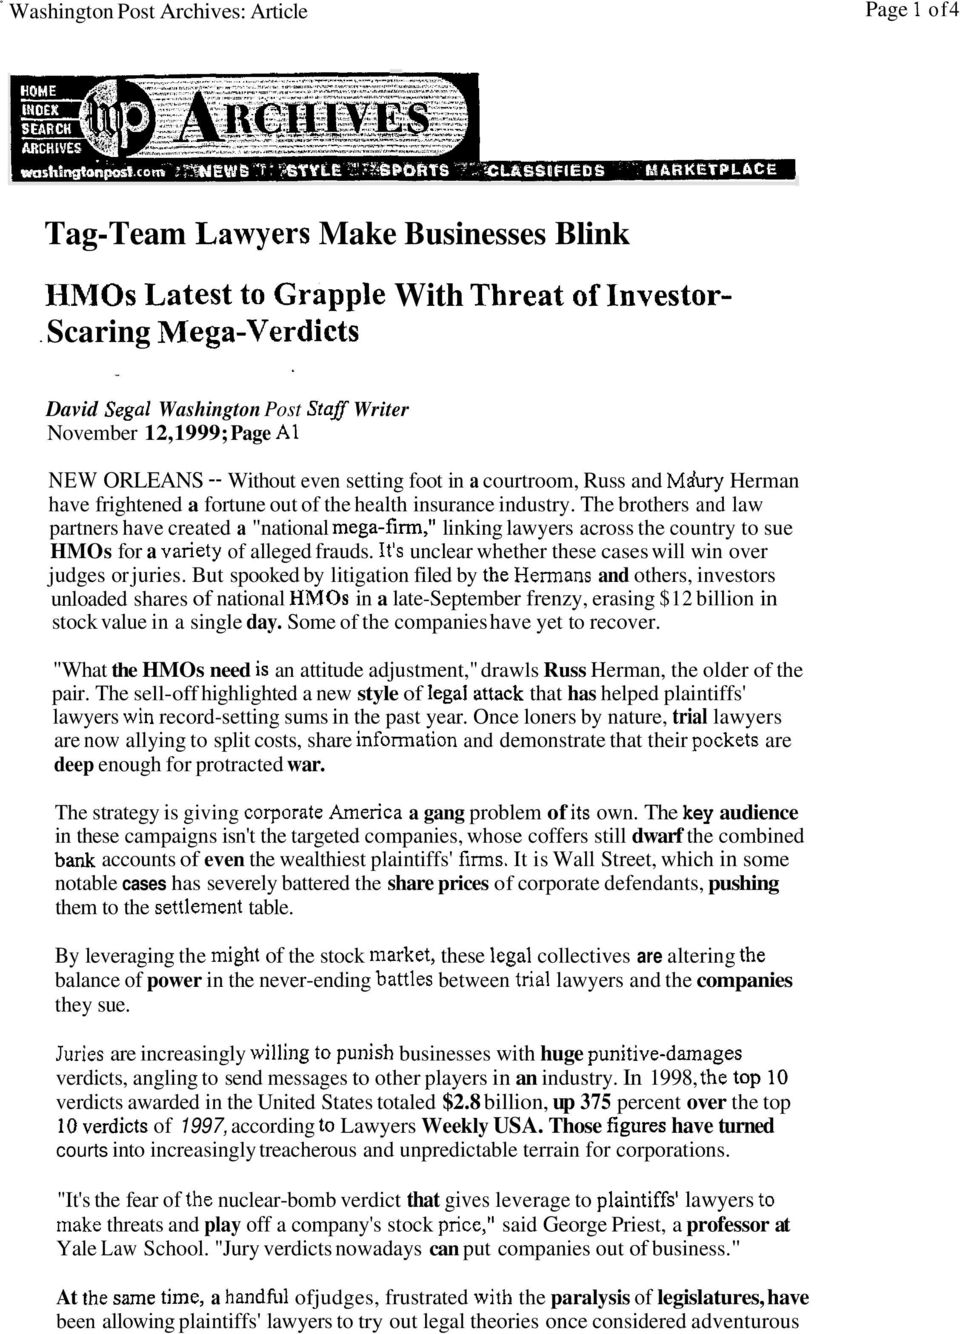 "the health insurance industry. The brothers and law partners have created a ""national mega-firm,tt linking lawyers across the country to sue HMOs for a variety of alleged frauds."